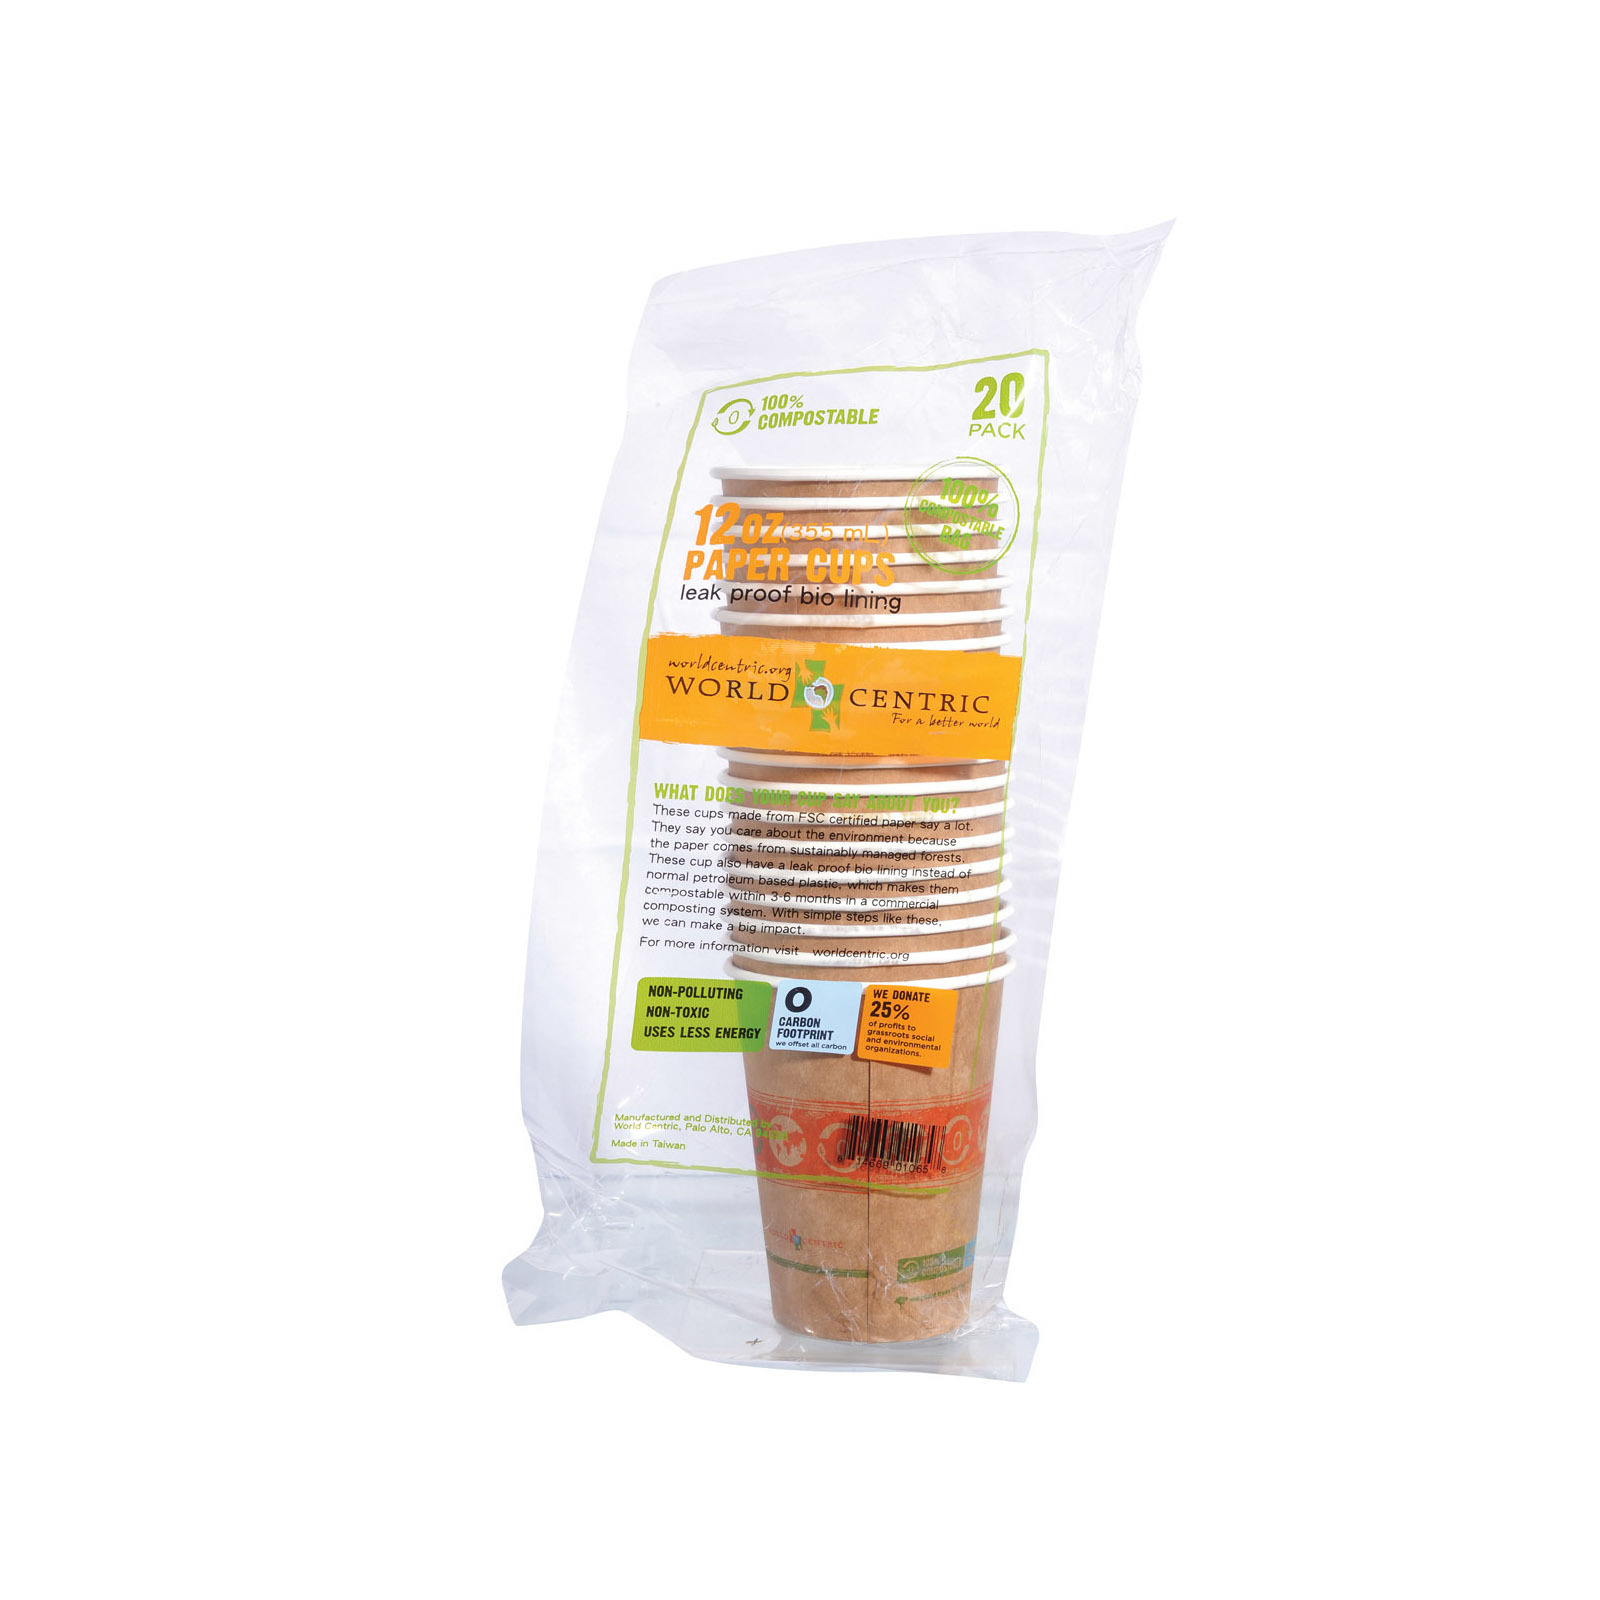 World Centric Compostable Hot Paper Cups - Case of 12 - 12 oz.